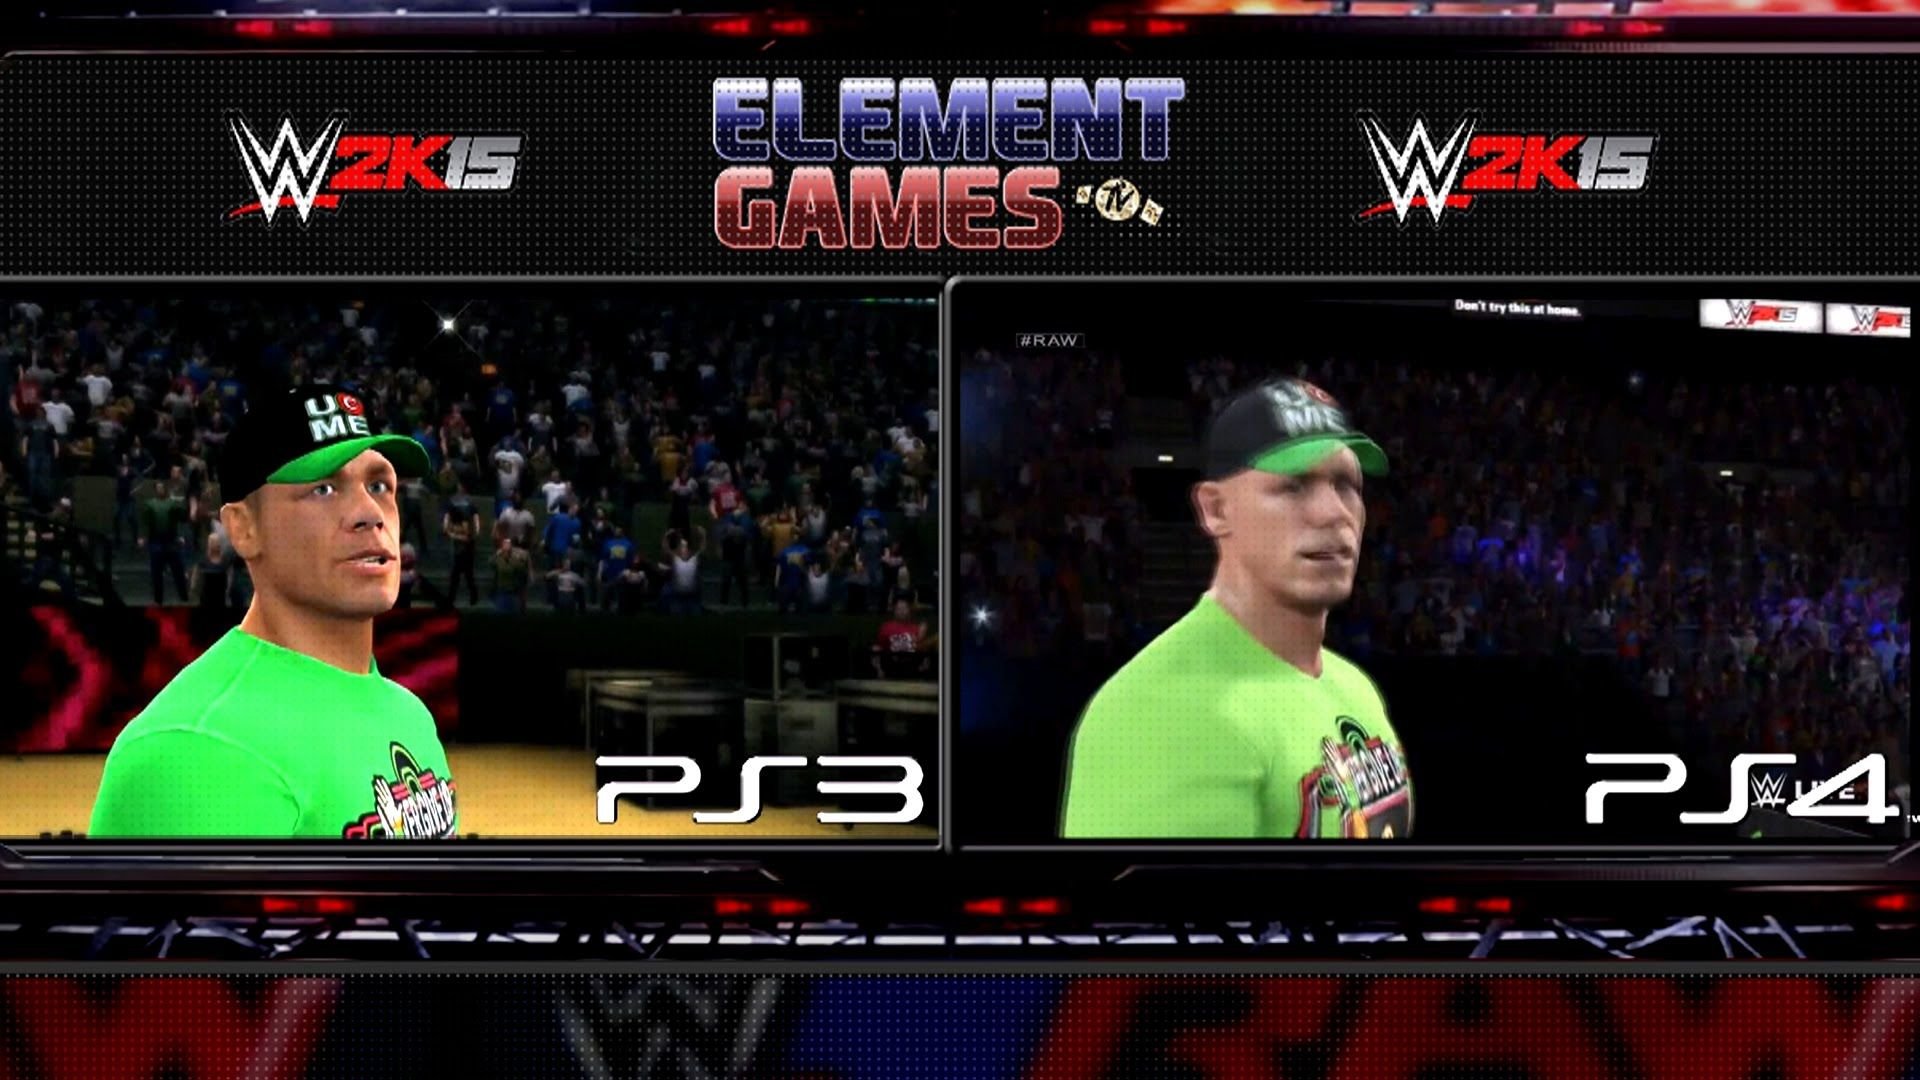 WWE 2K15 John Cena Entrance PS4 Vs PS3 Comparison Ps4 Ps3 Graphic